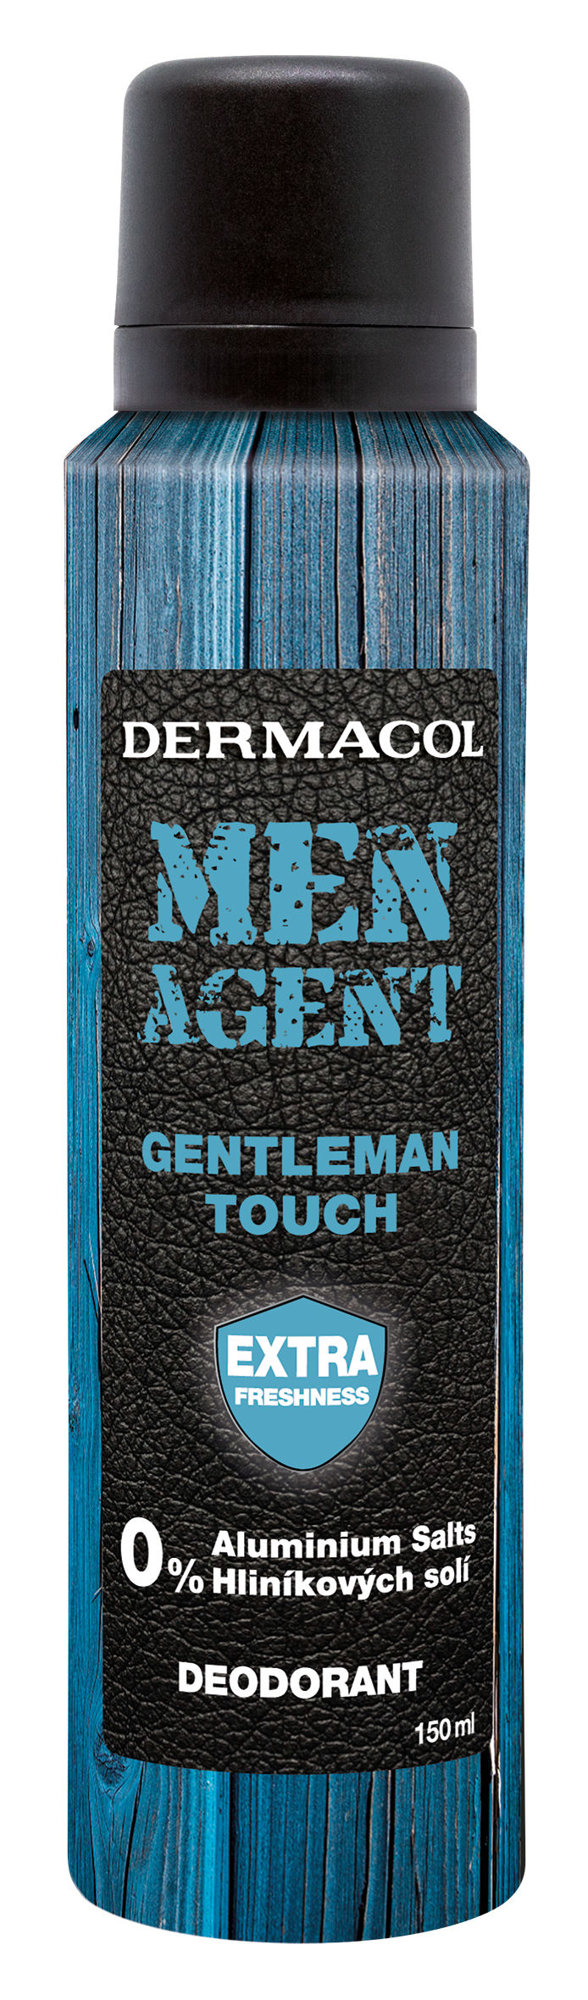 Dermacol na cesty Men Agent Gentleman Touch (Deodorant, M, 150 ml)